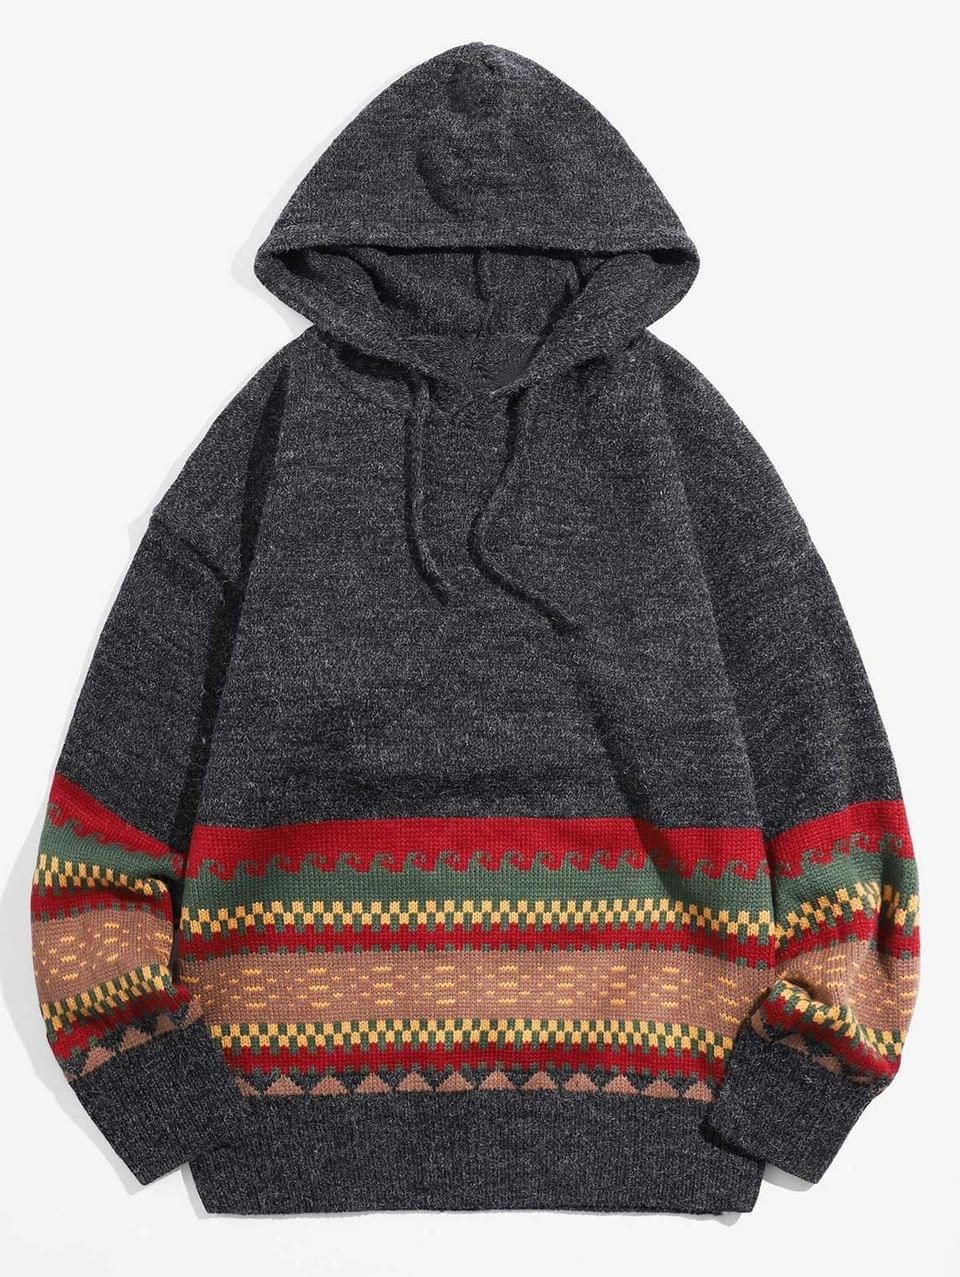 Men's Contrast Color Splicing Geometric Graphic Hooded Sweater - Black Xl